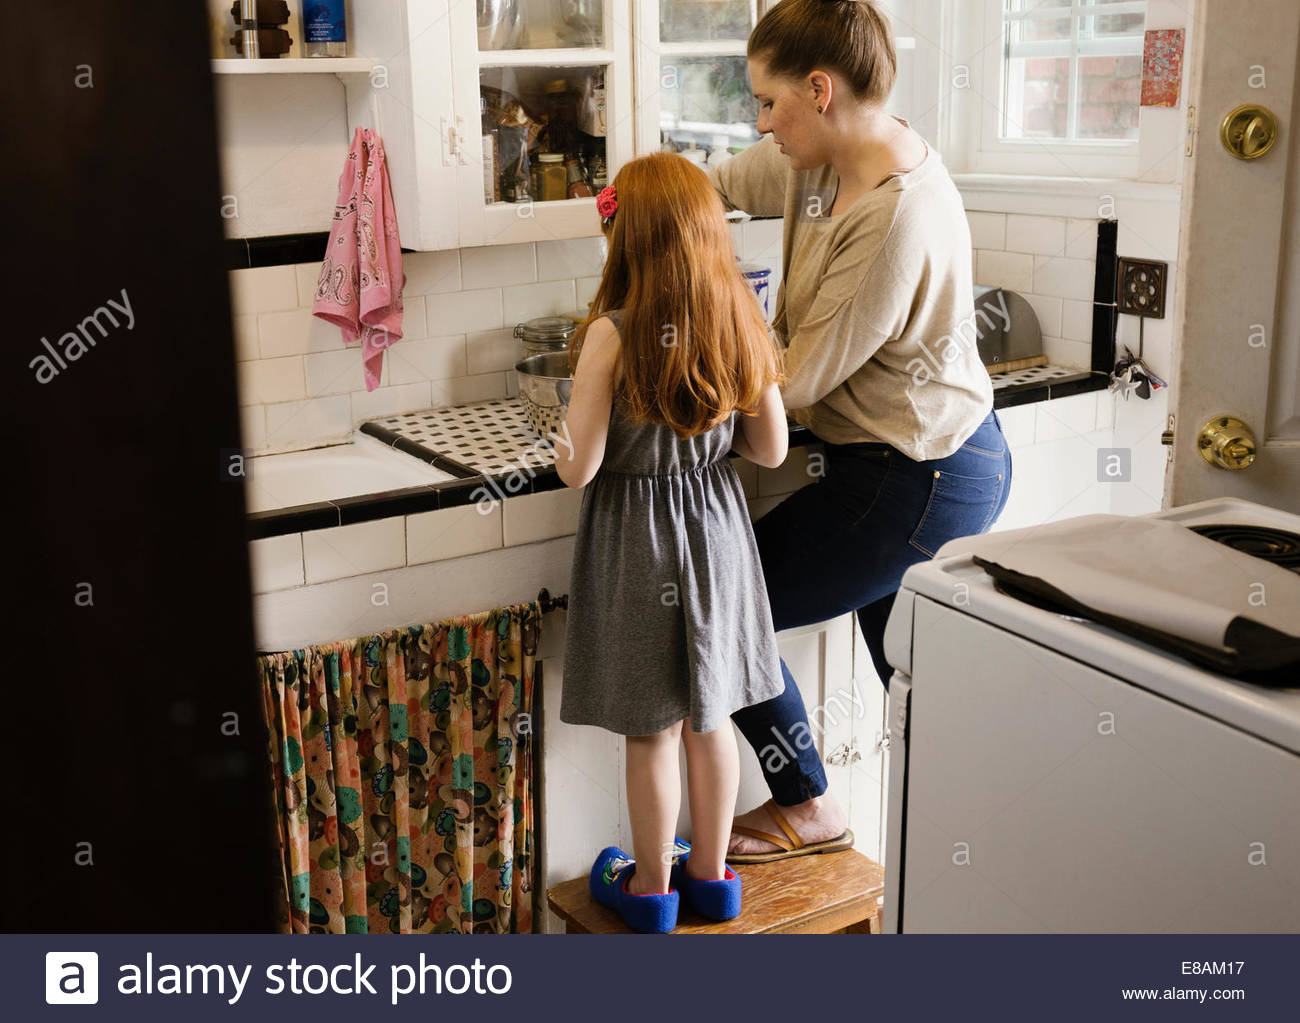 Girl and mother baking together in kitchen - Stock Image